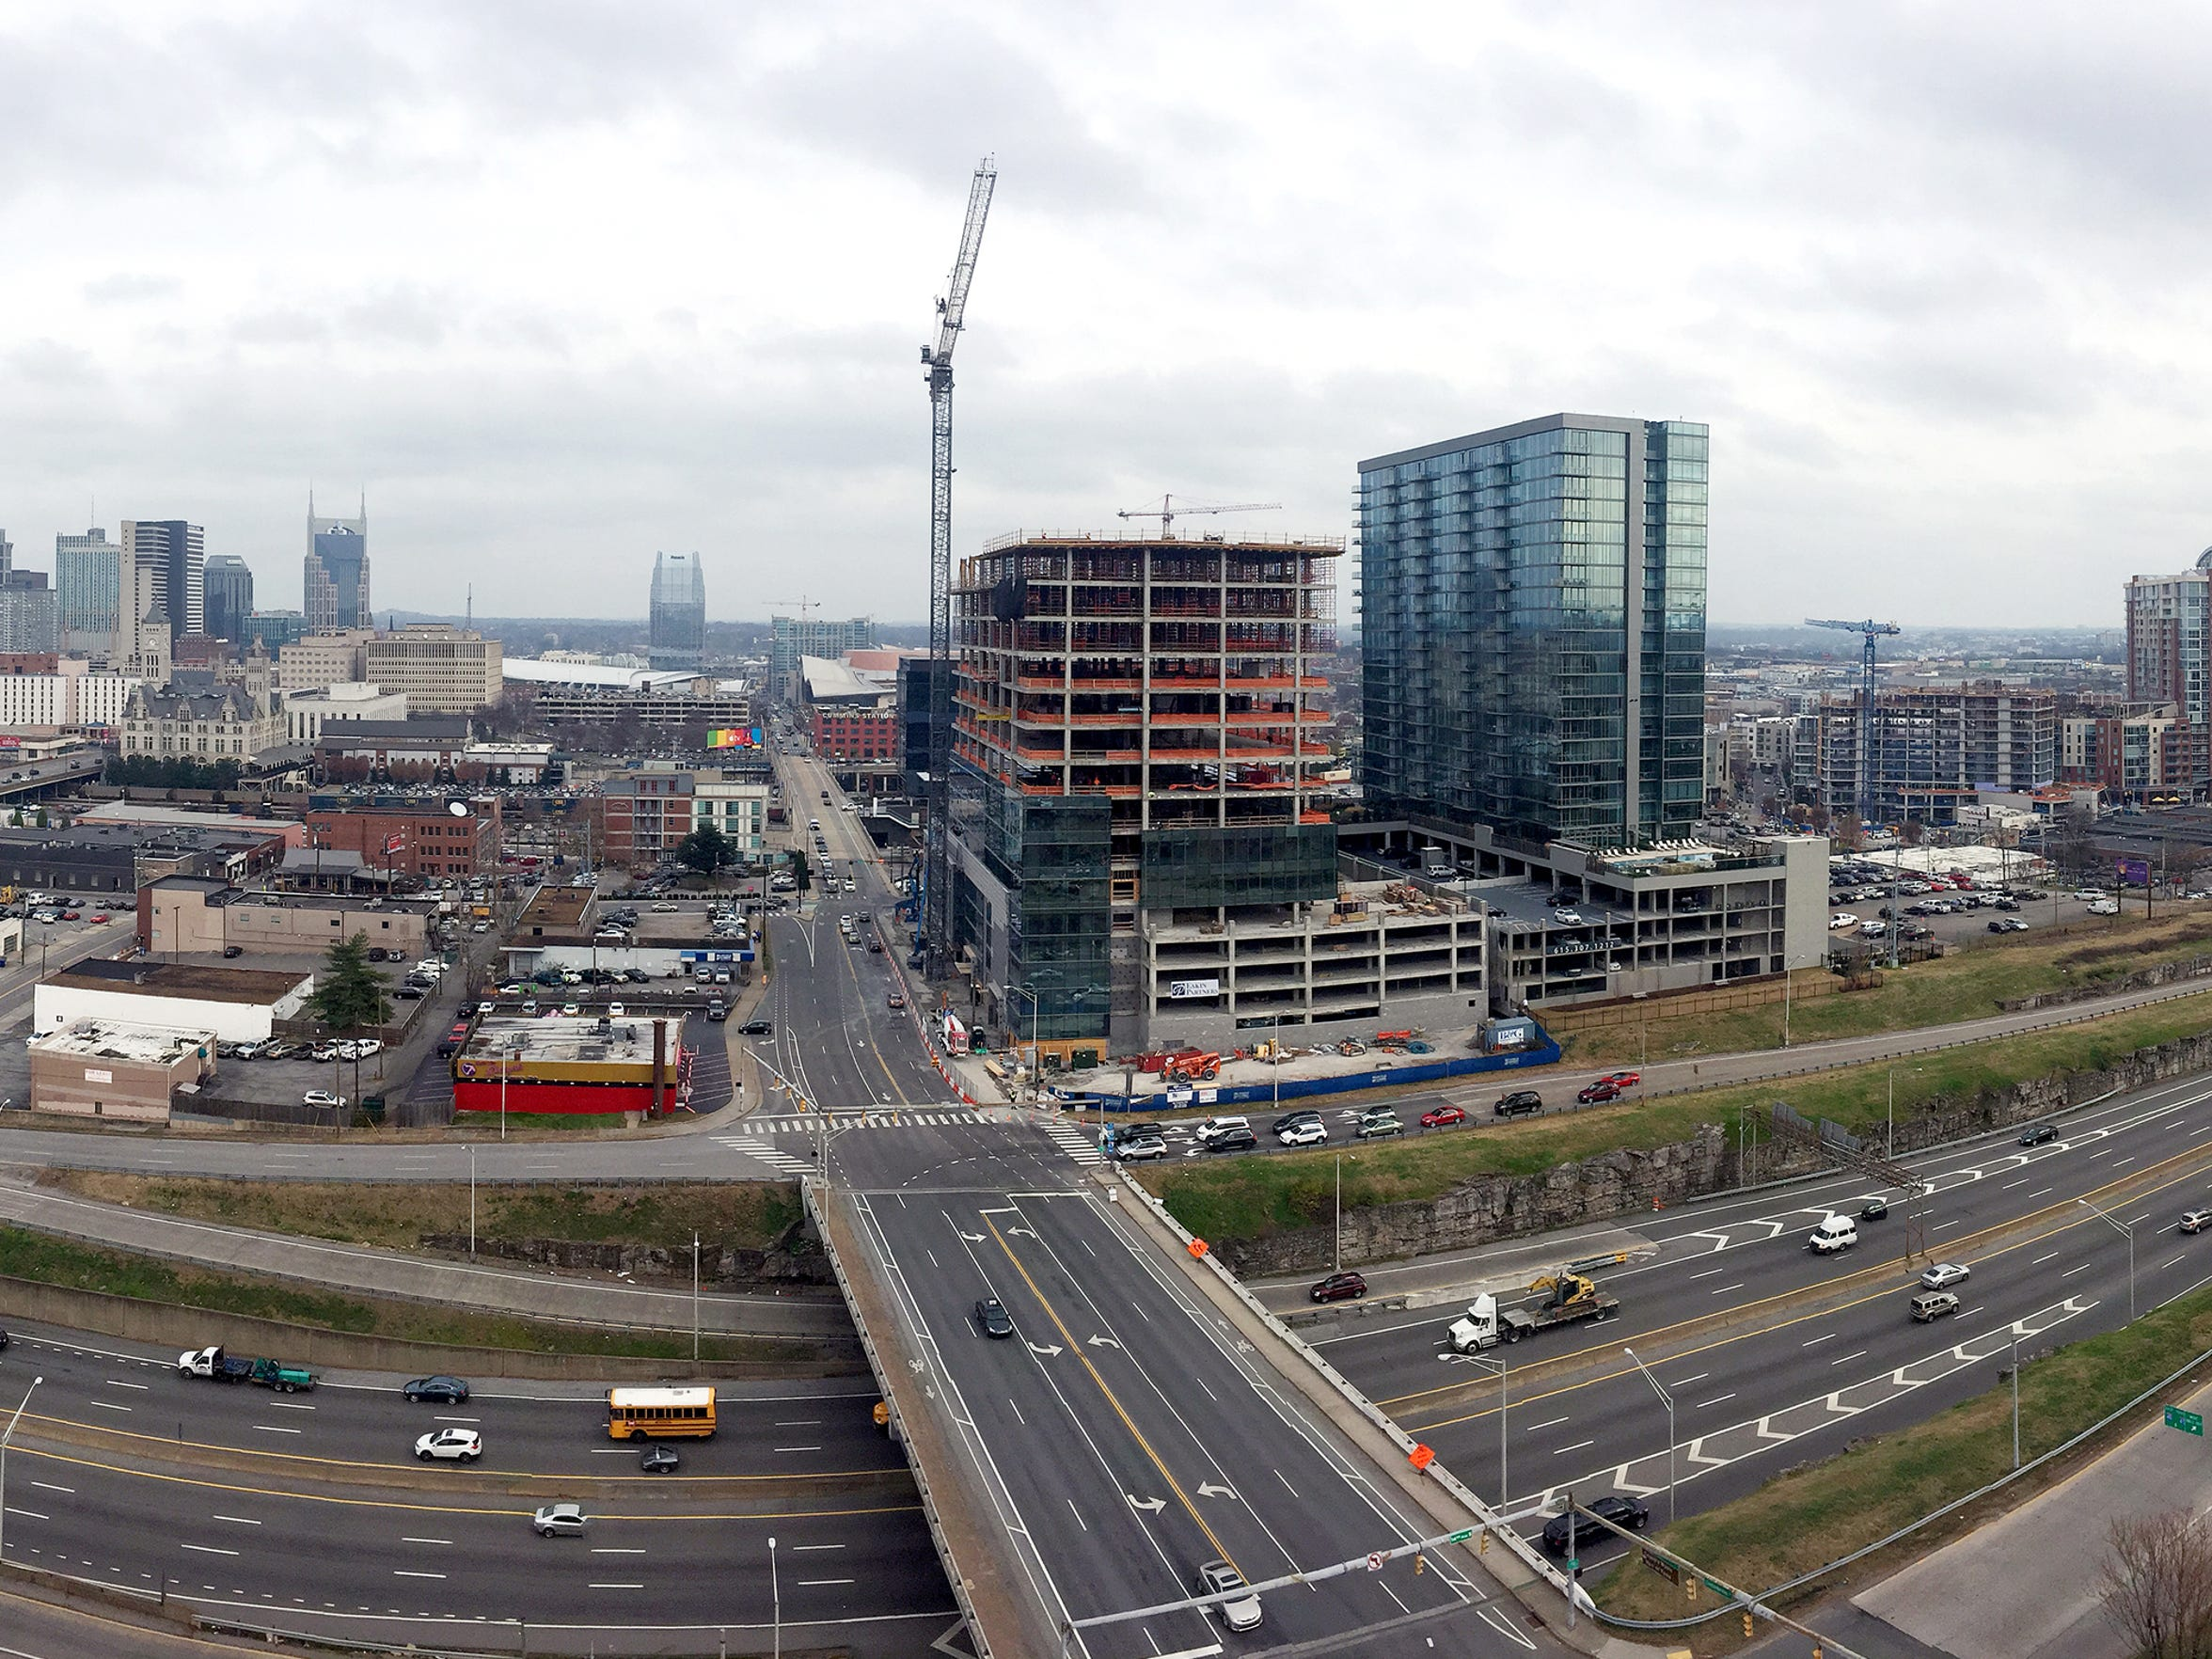 A panoramic view of Nashville looking down Demonbreun